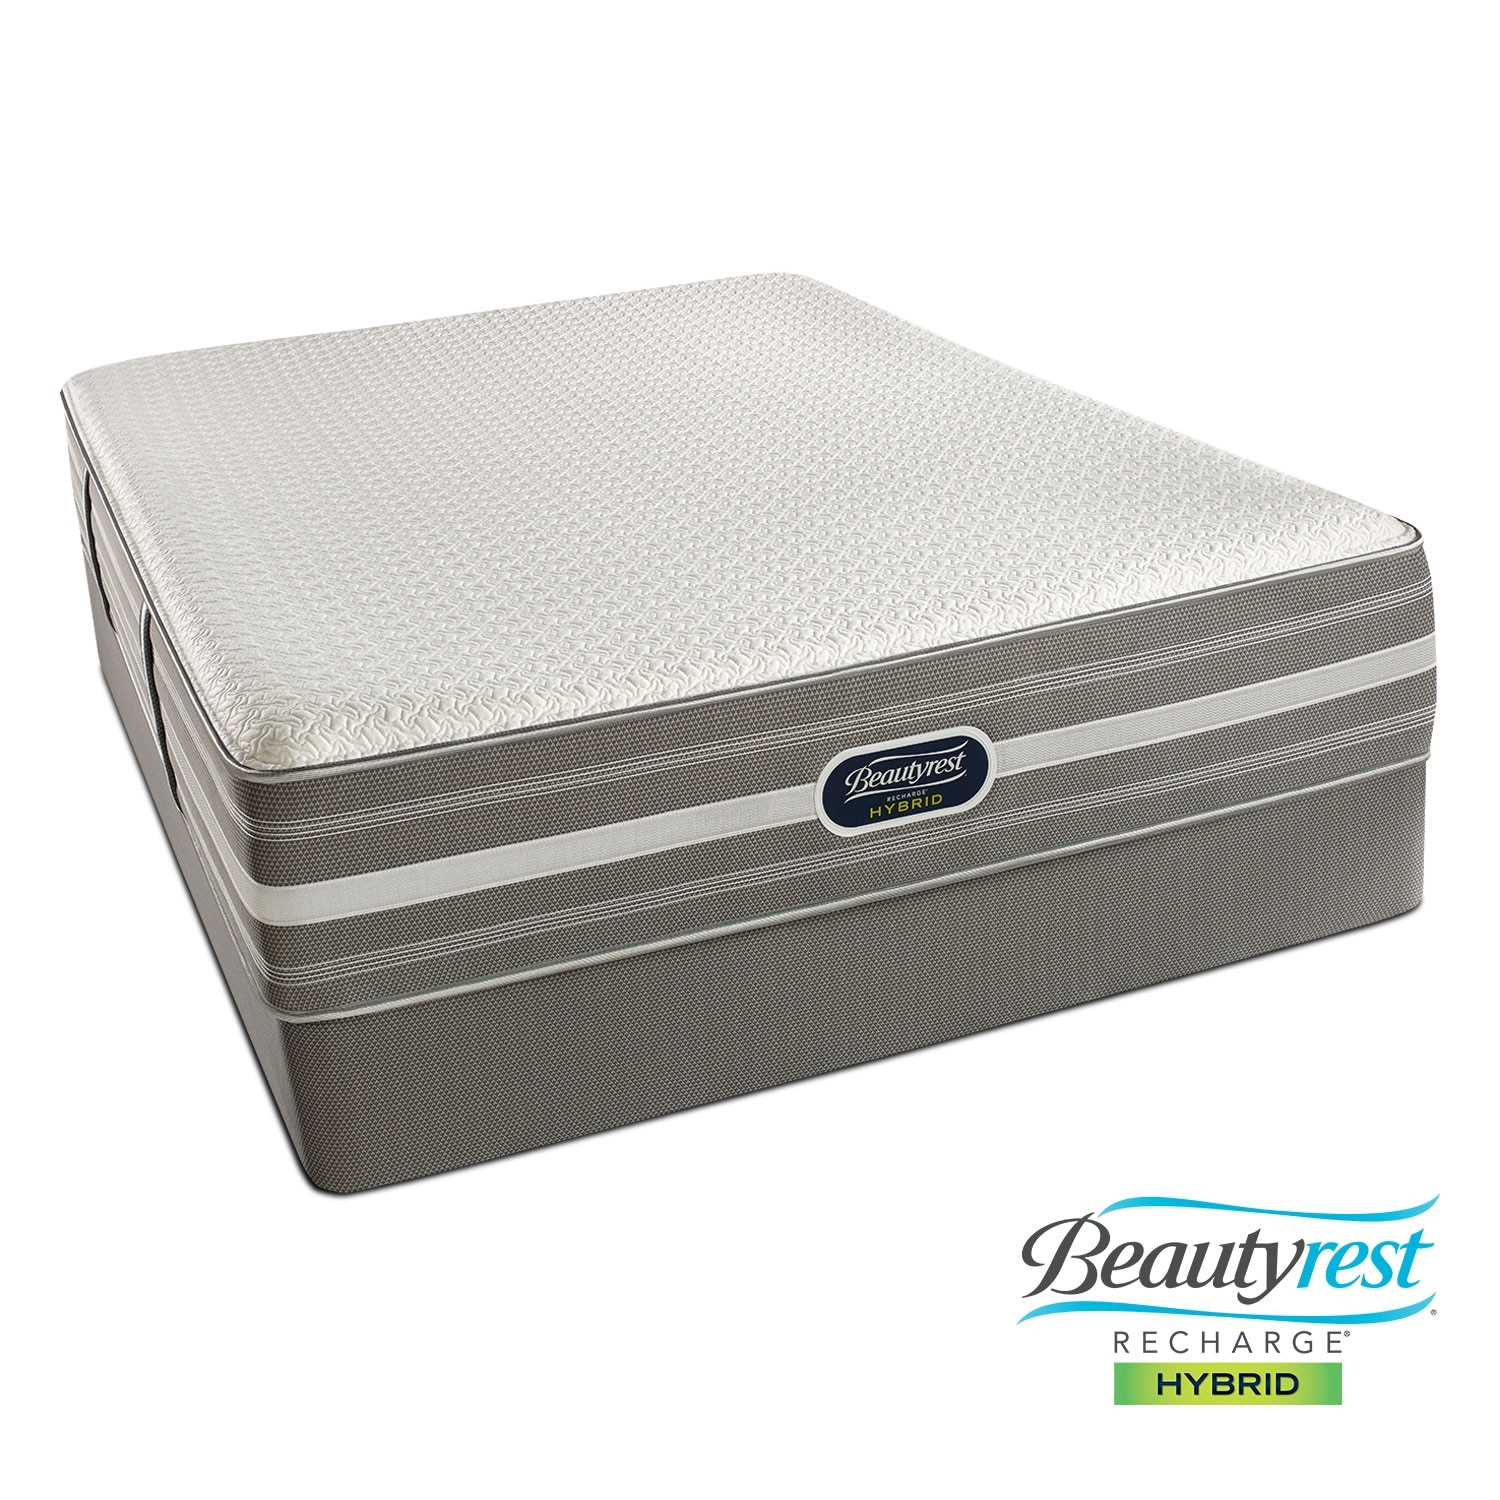 Mattresses and Bedding - Hopewell Luxury Firm Queen Mattress and Foundation Set